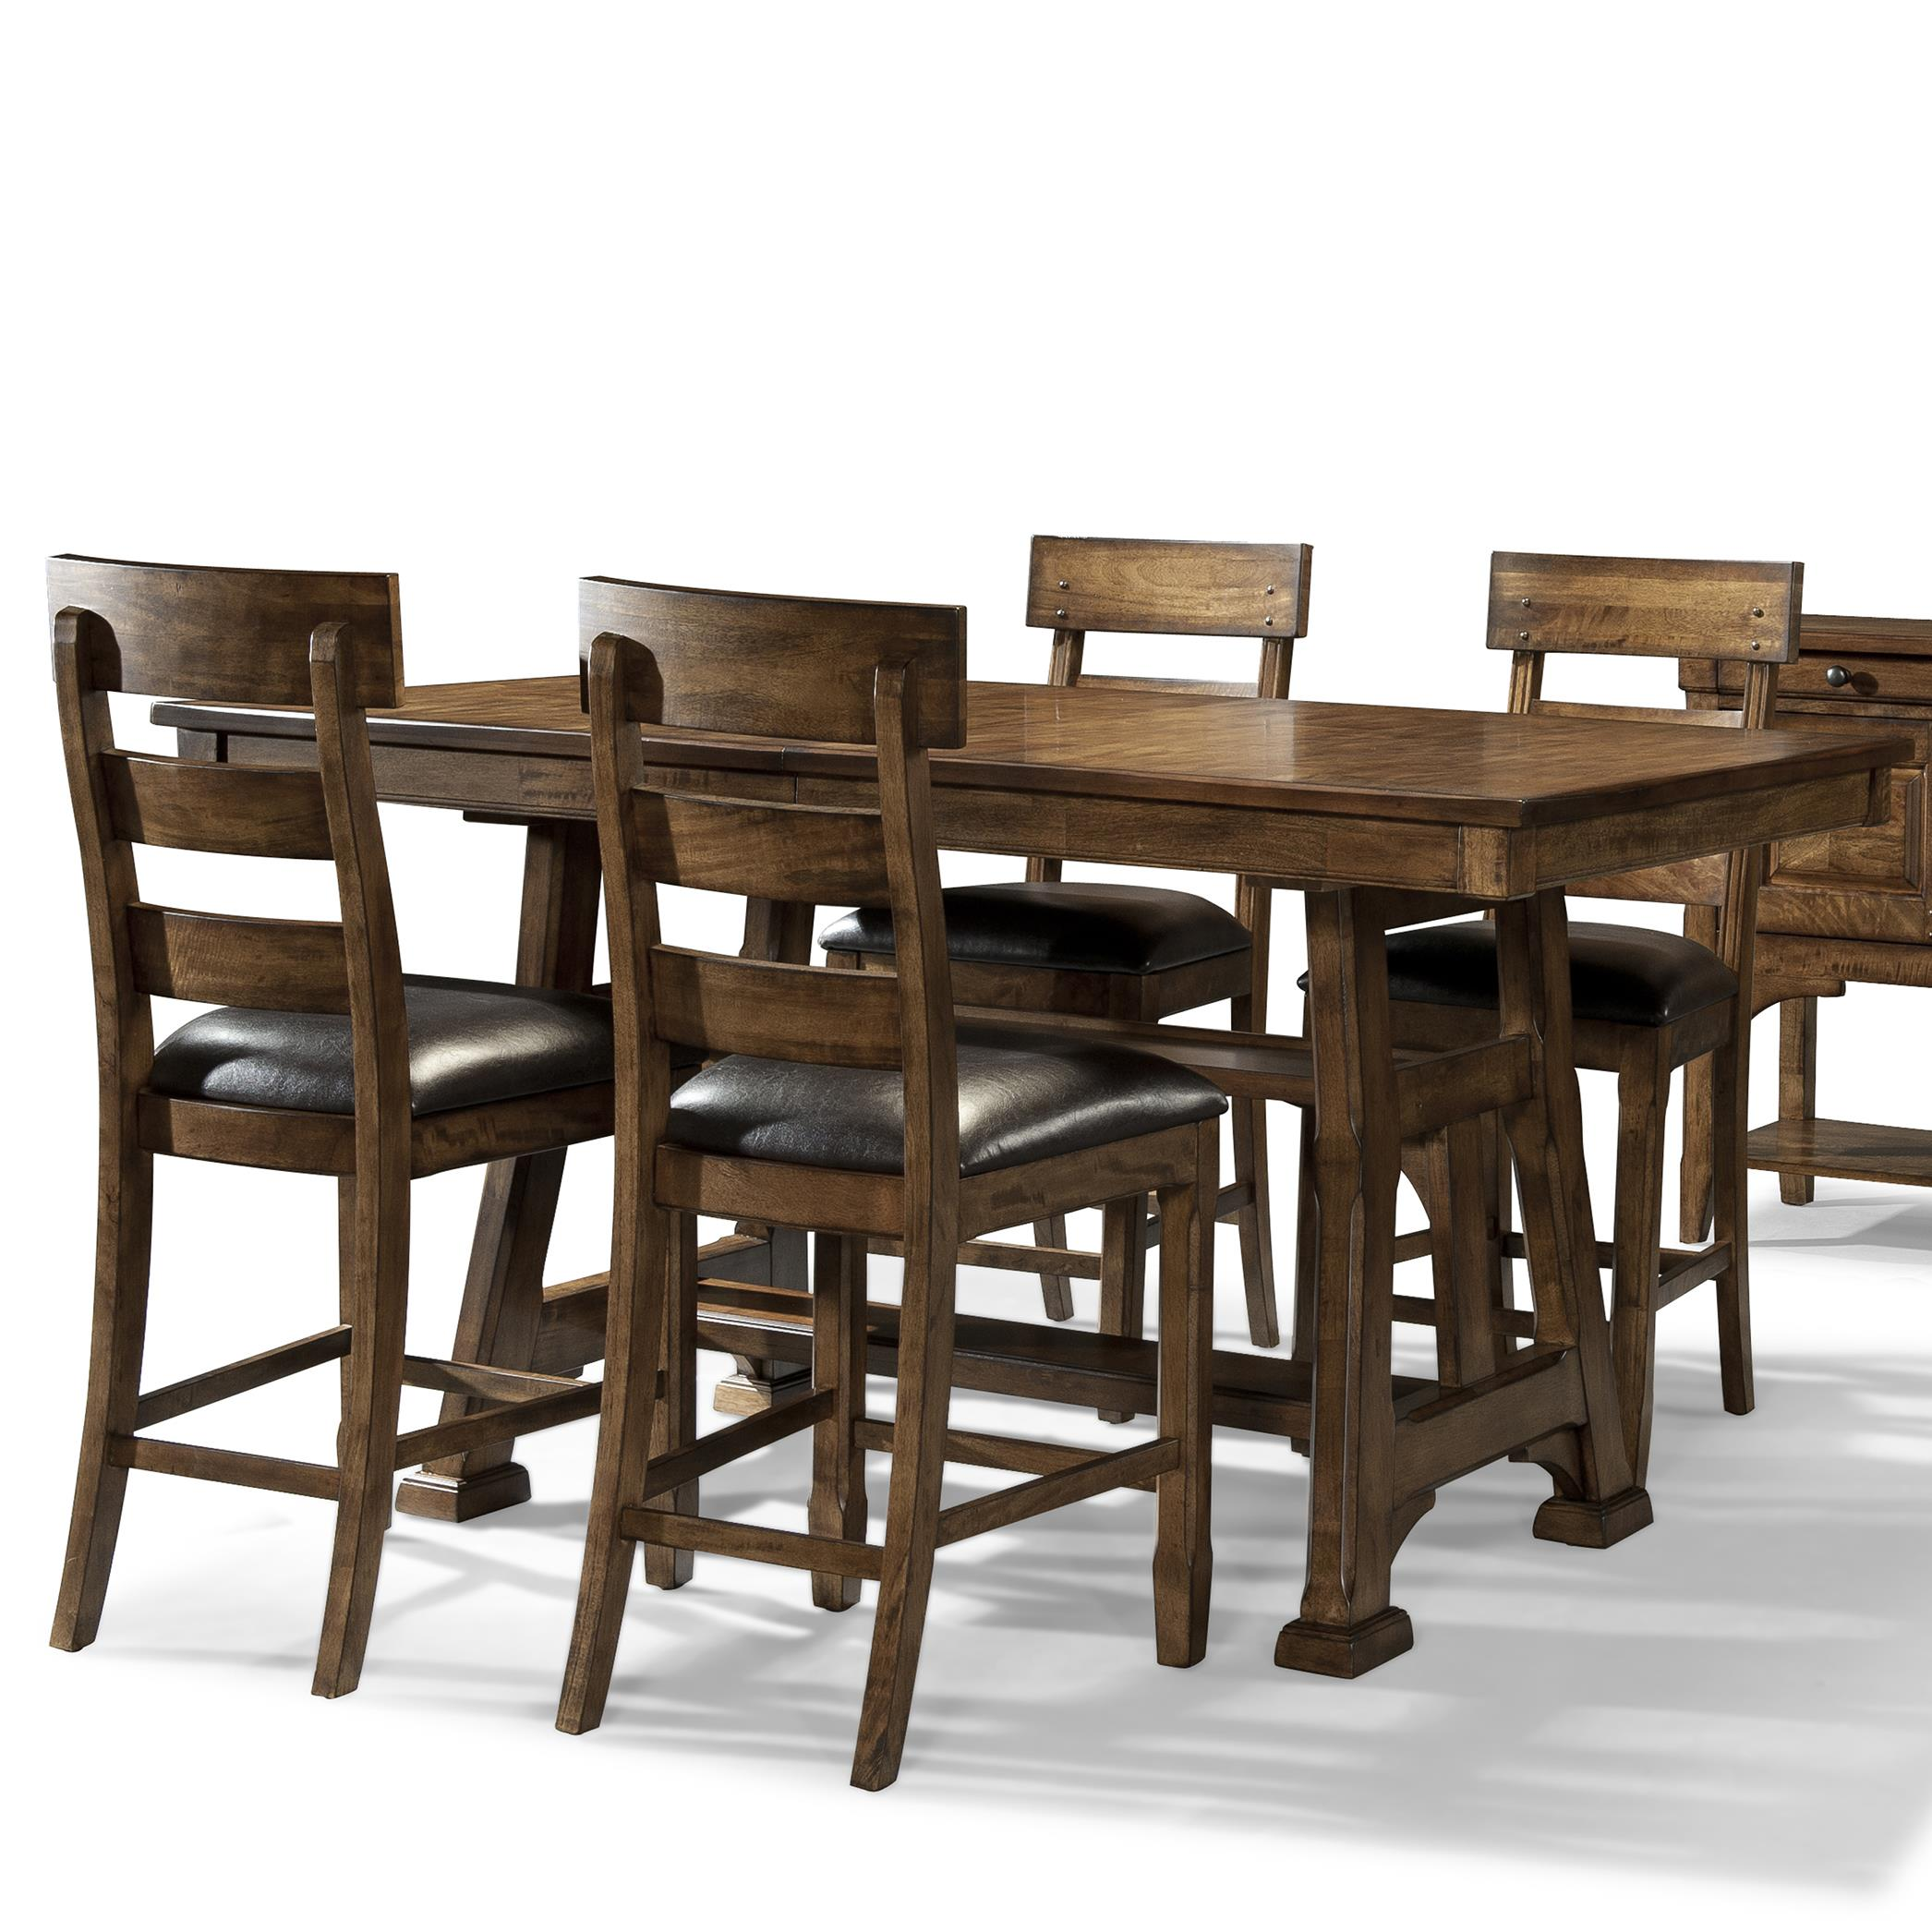 Ozark 5 Piece Trestle Pub Table and Stool Set by A-A at Walker's Furniture